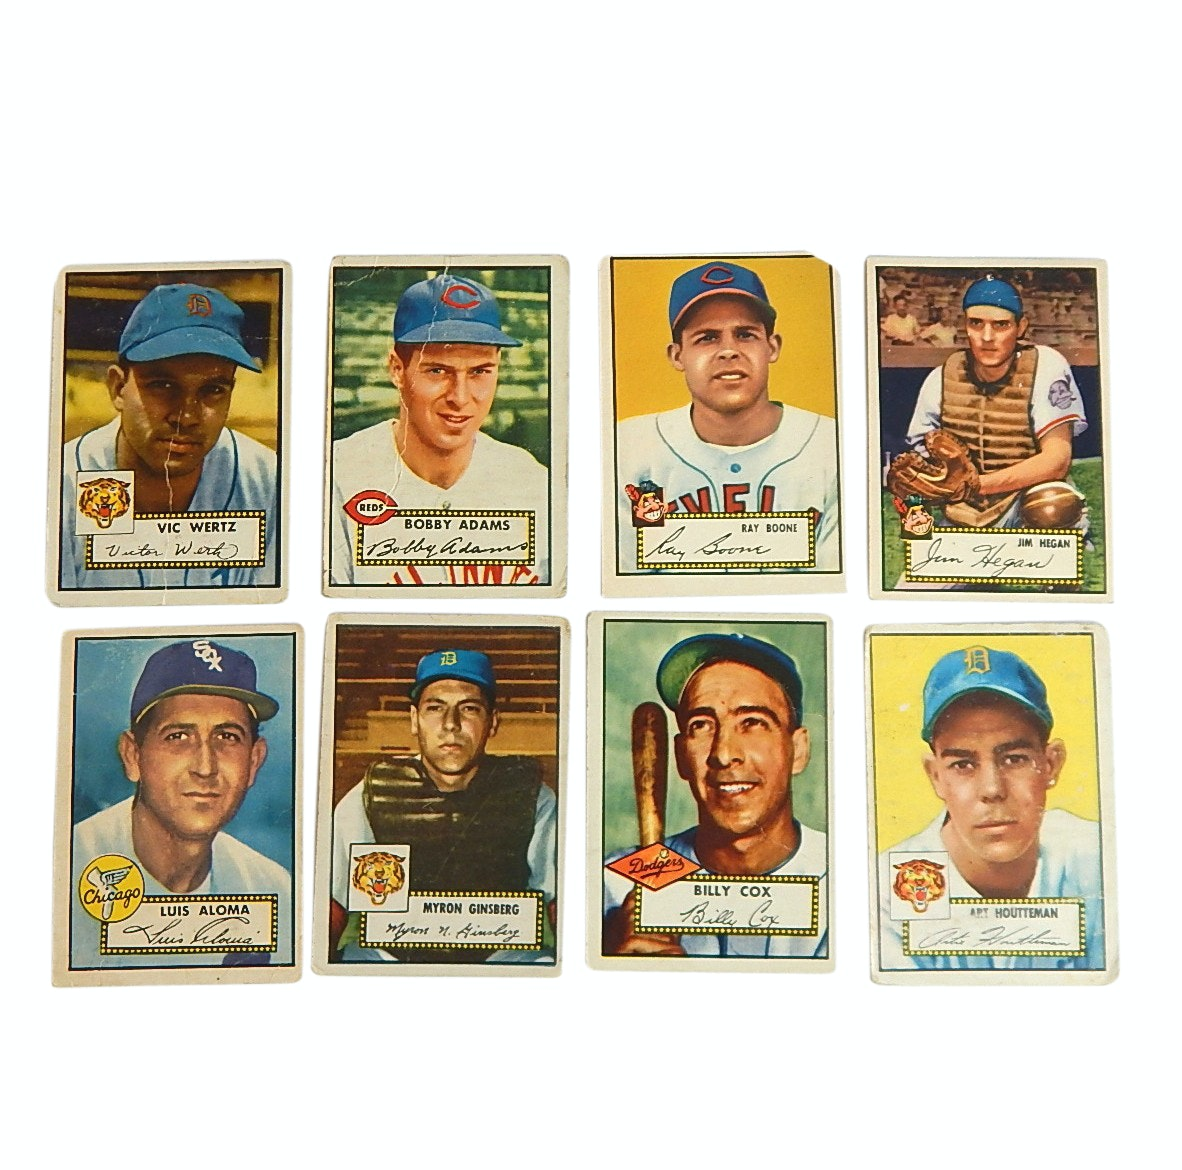 1952 Topps Baseball Cards with Wertz, Adams, Boone, Hegan, Cox and More